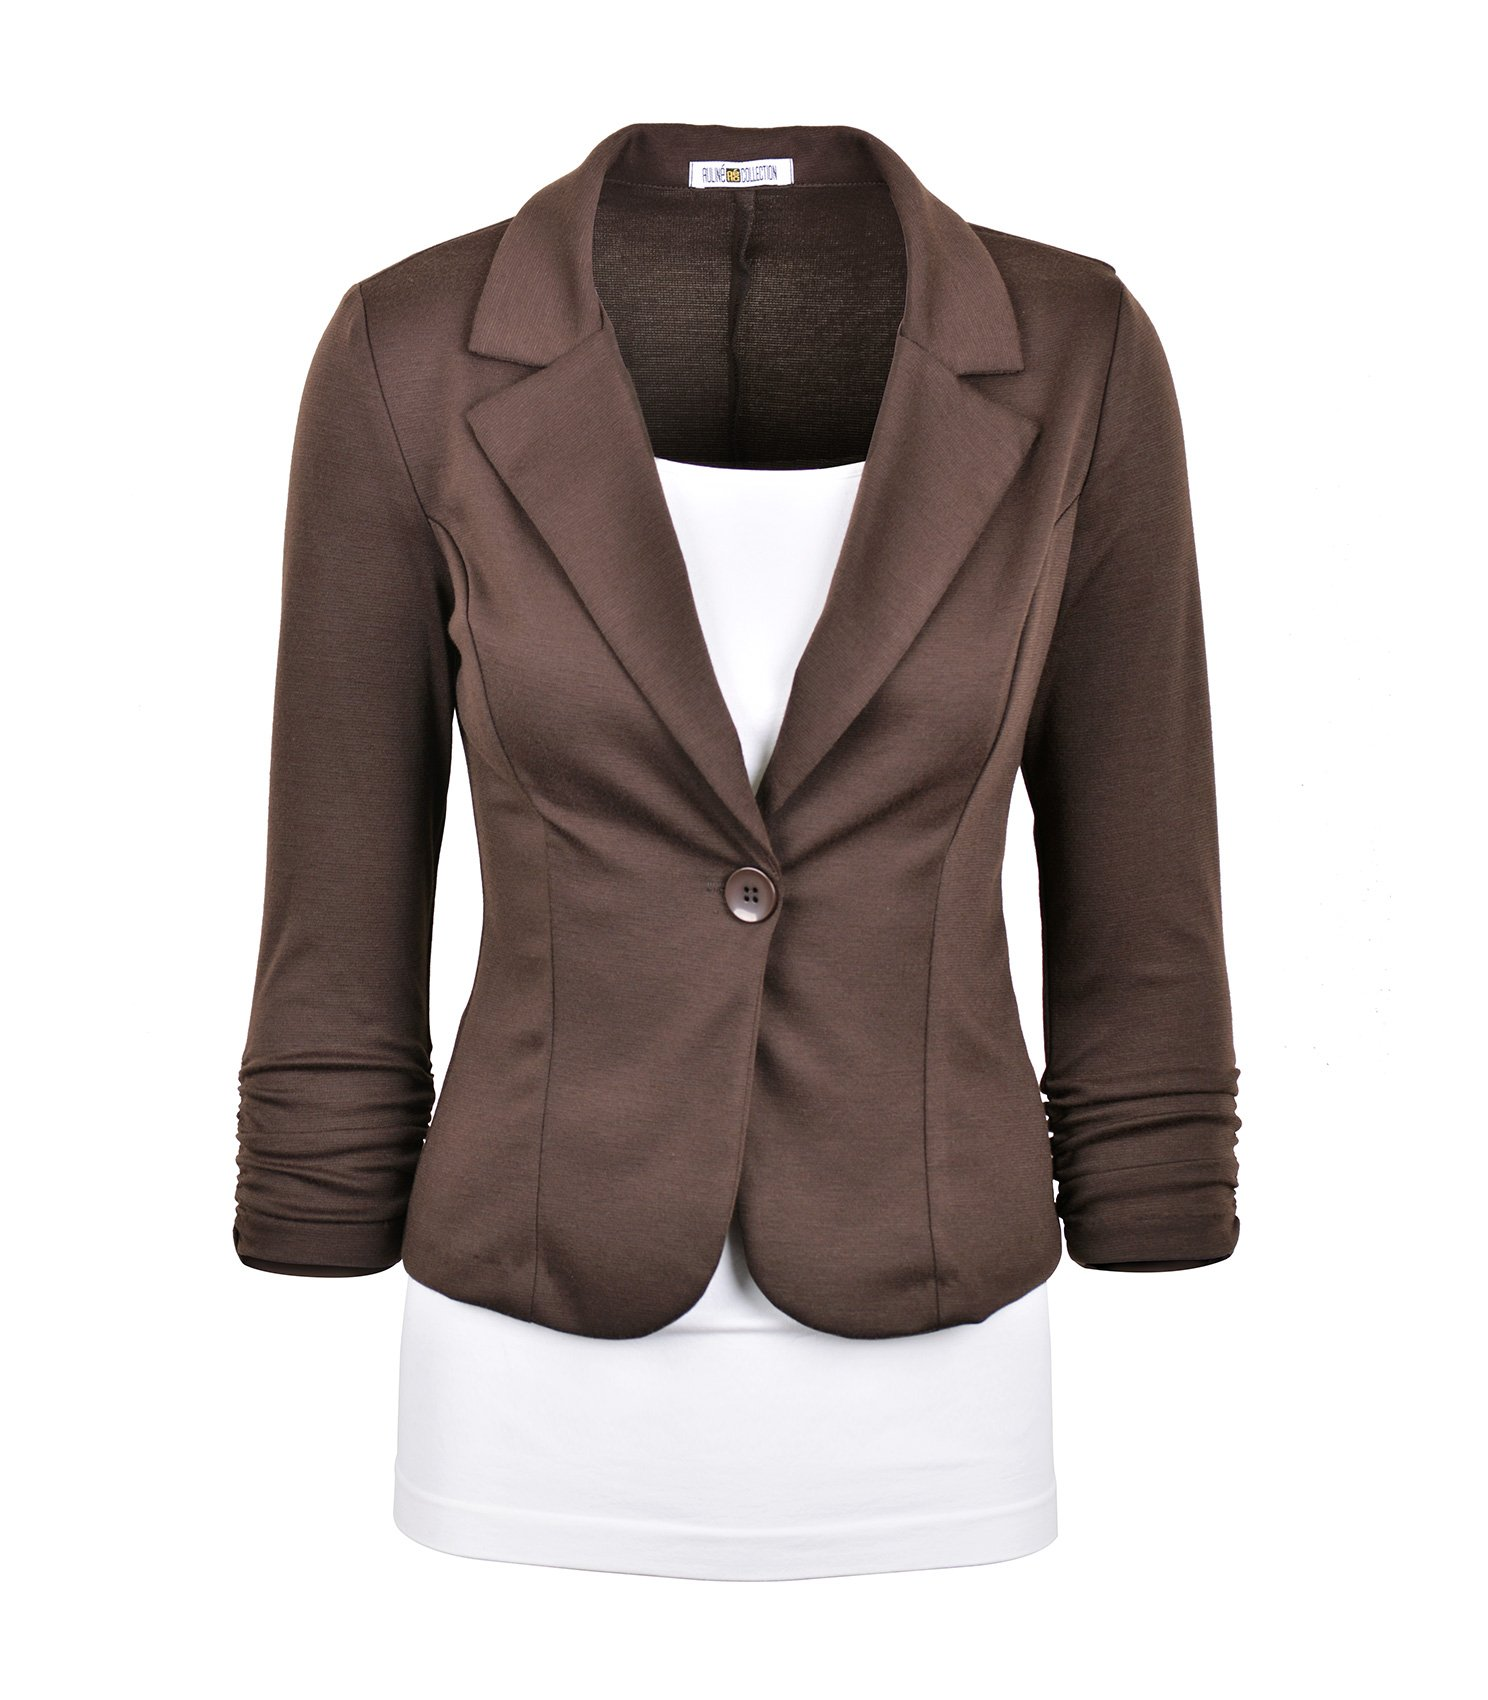 Auliné Collection Women's Casual Work Solid Color Knit Blazer Brown Small